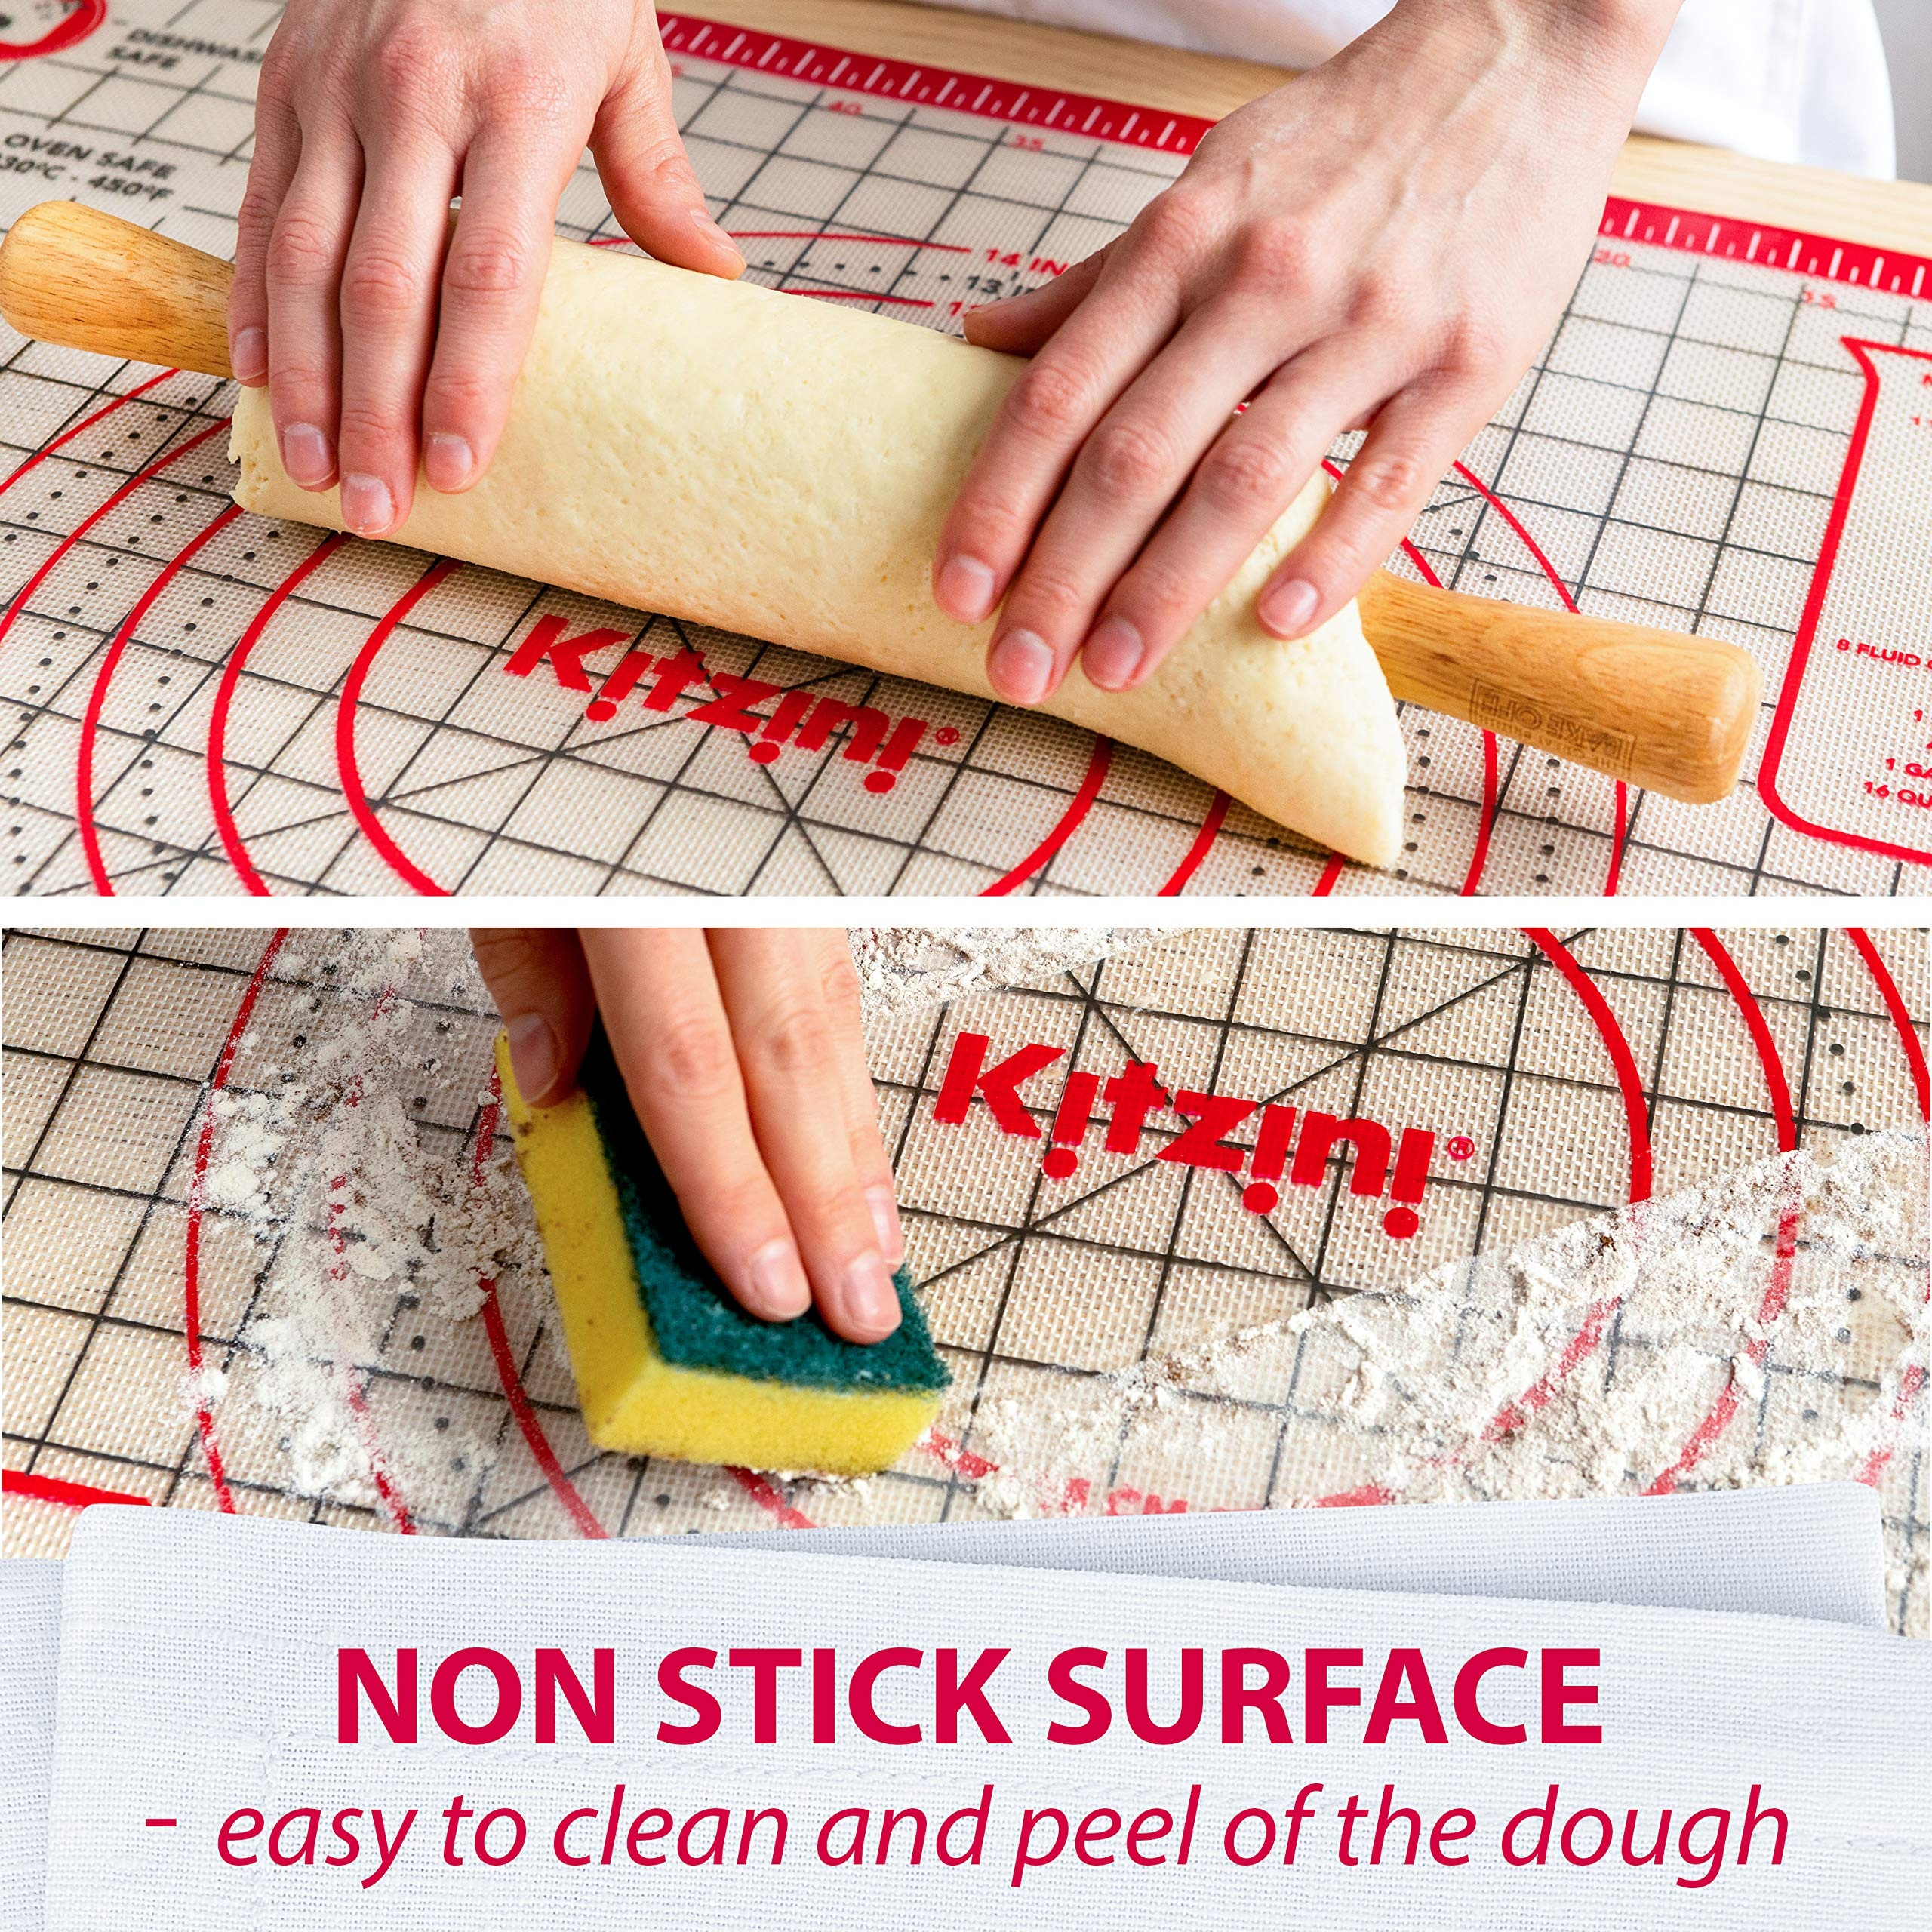 Pastry Mat Silicone Non Slip - Extra Large Thick Non Stick Silicone Baking Mat For Rolling Dough Pie Crust Fondant Pizza and Cookies - Heavy Duty Easy Clean Kneading Mat With Measurements - 20'' x 28'' by Kitzini (Image #1)